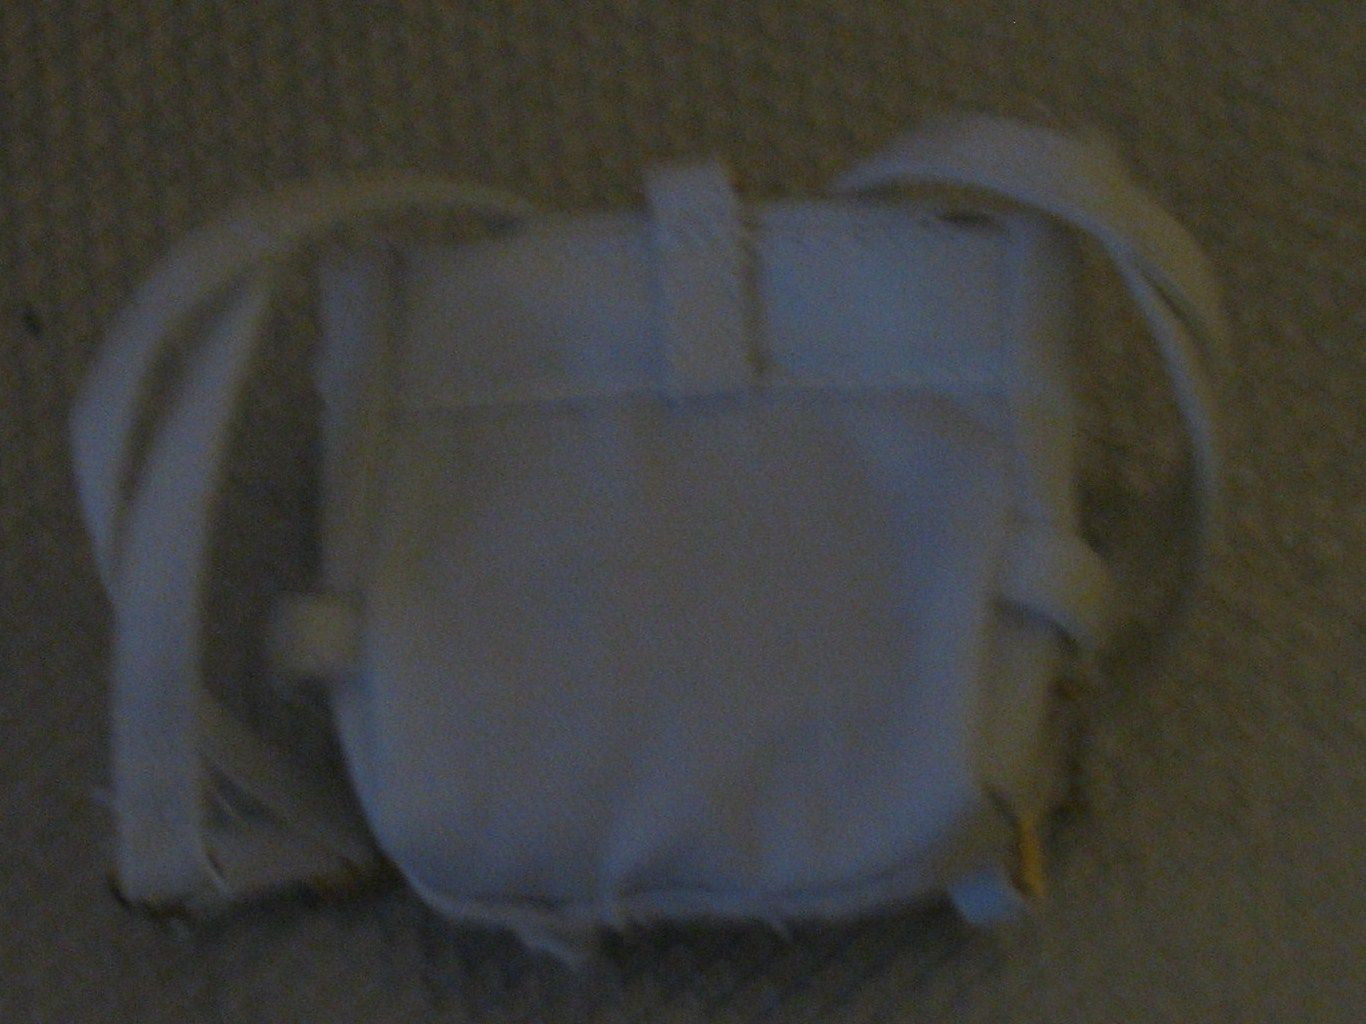 A017 GI JOE Hasbro Reissued White Snow Troops Back Pack Brand New.